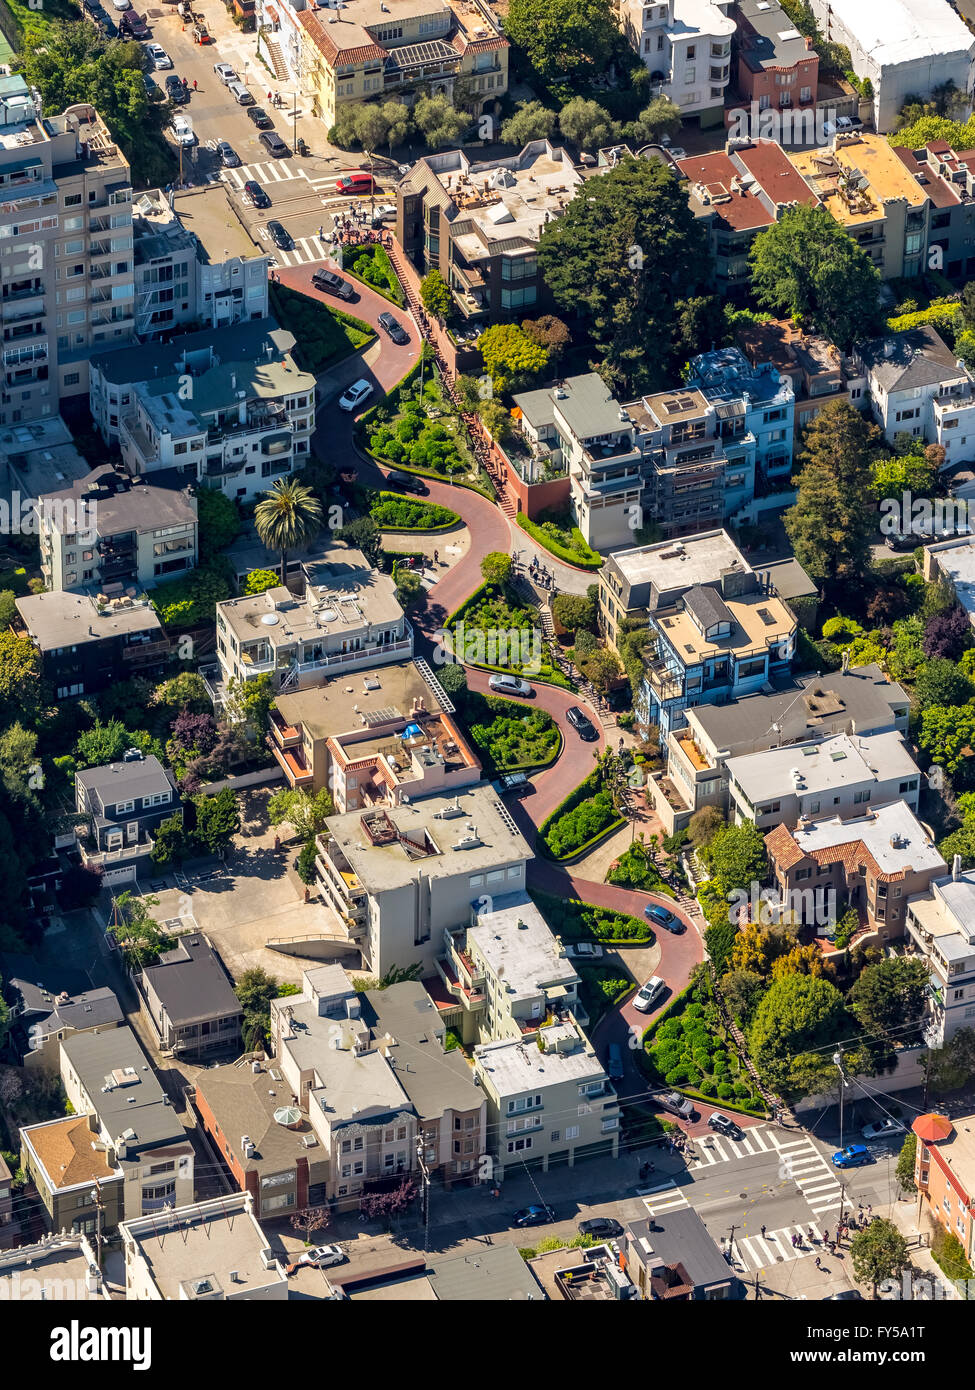 Aerial view, Lombard Street with hairpin turns, winding road, the streets of San Francisco, San Francisco - Stock Image